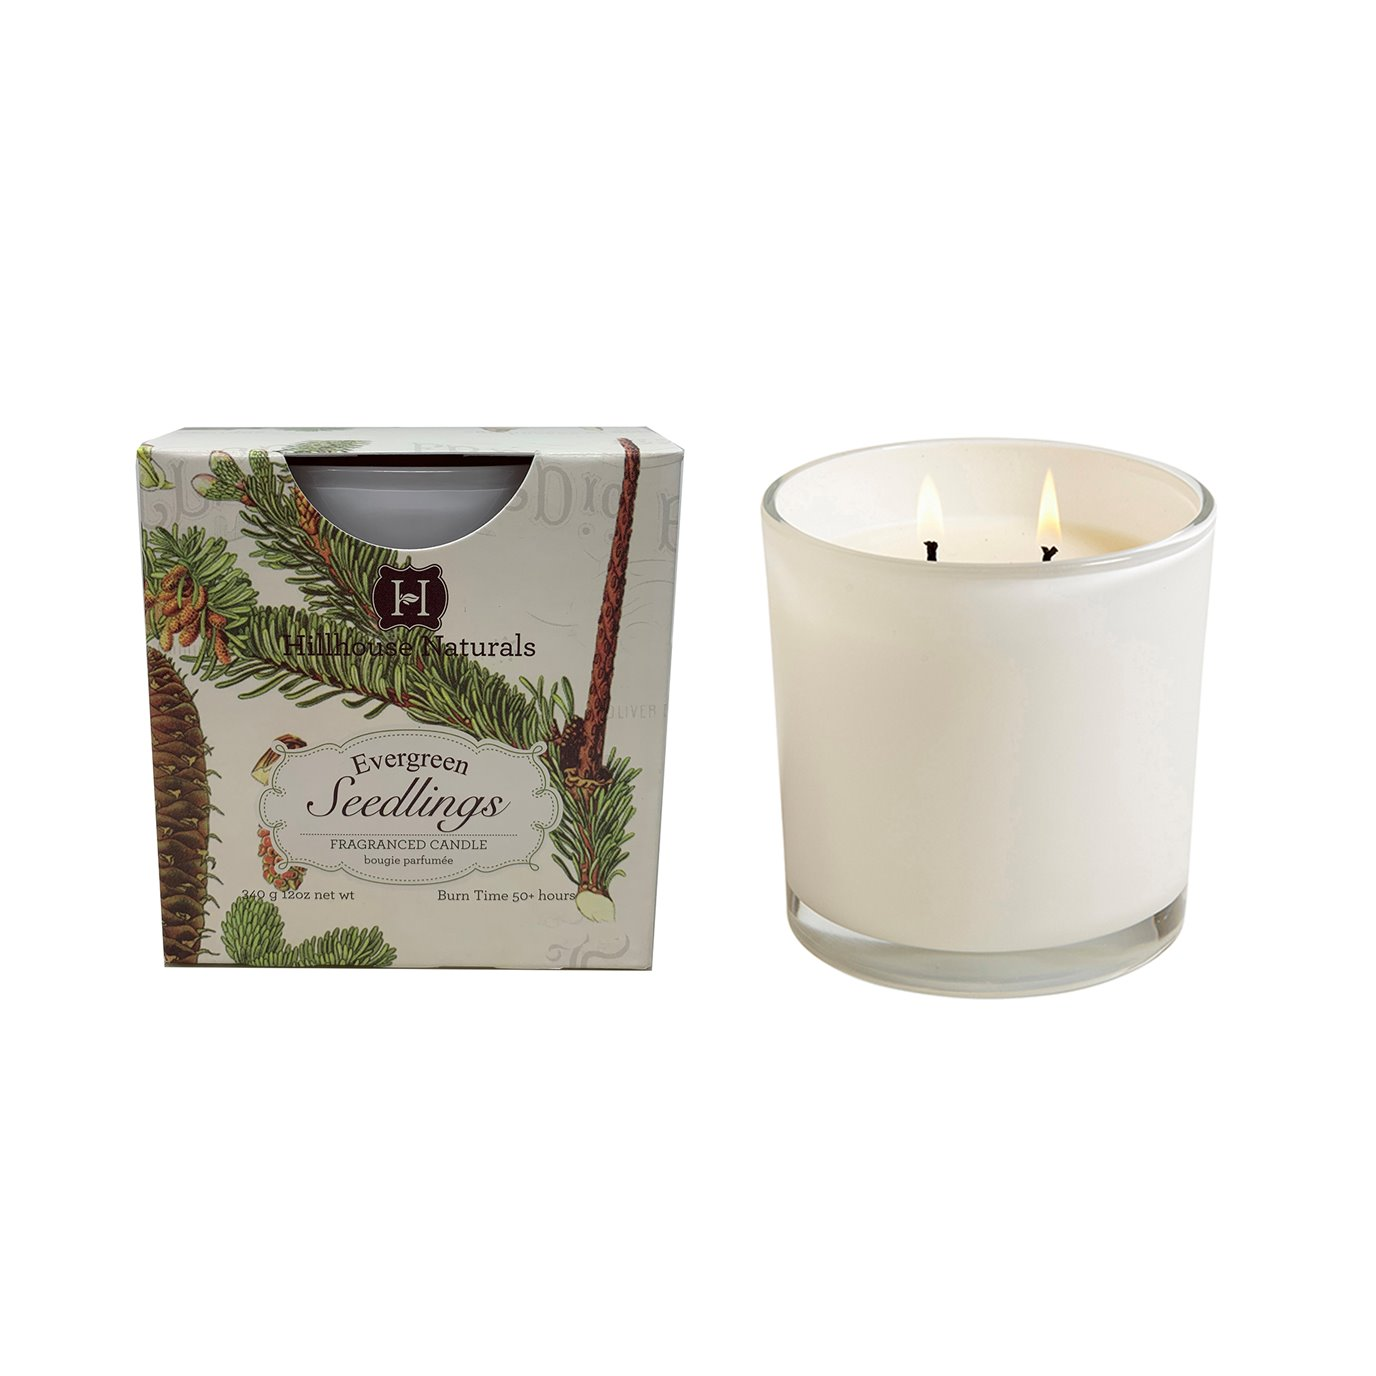 Evergreen Seedlings 2 Wick Candle In White Glass 12 oz Ctn 6 by Hillhouse Naturals